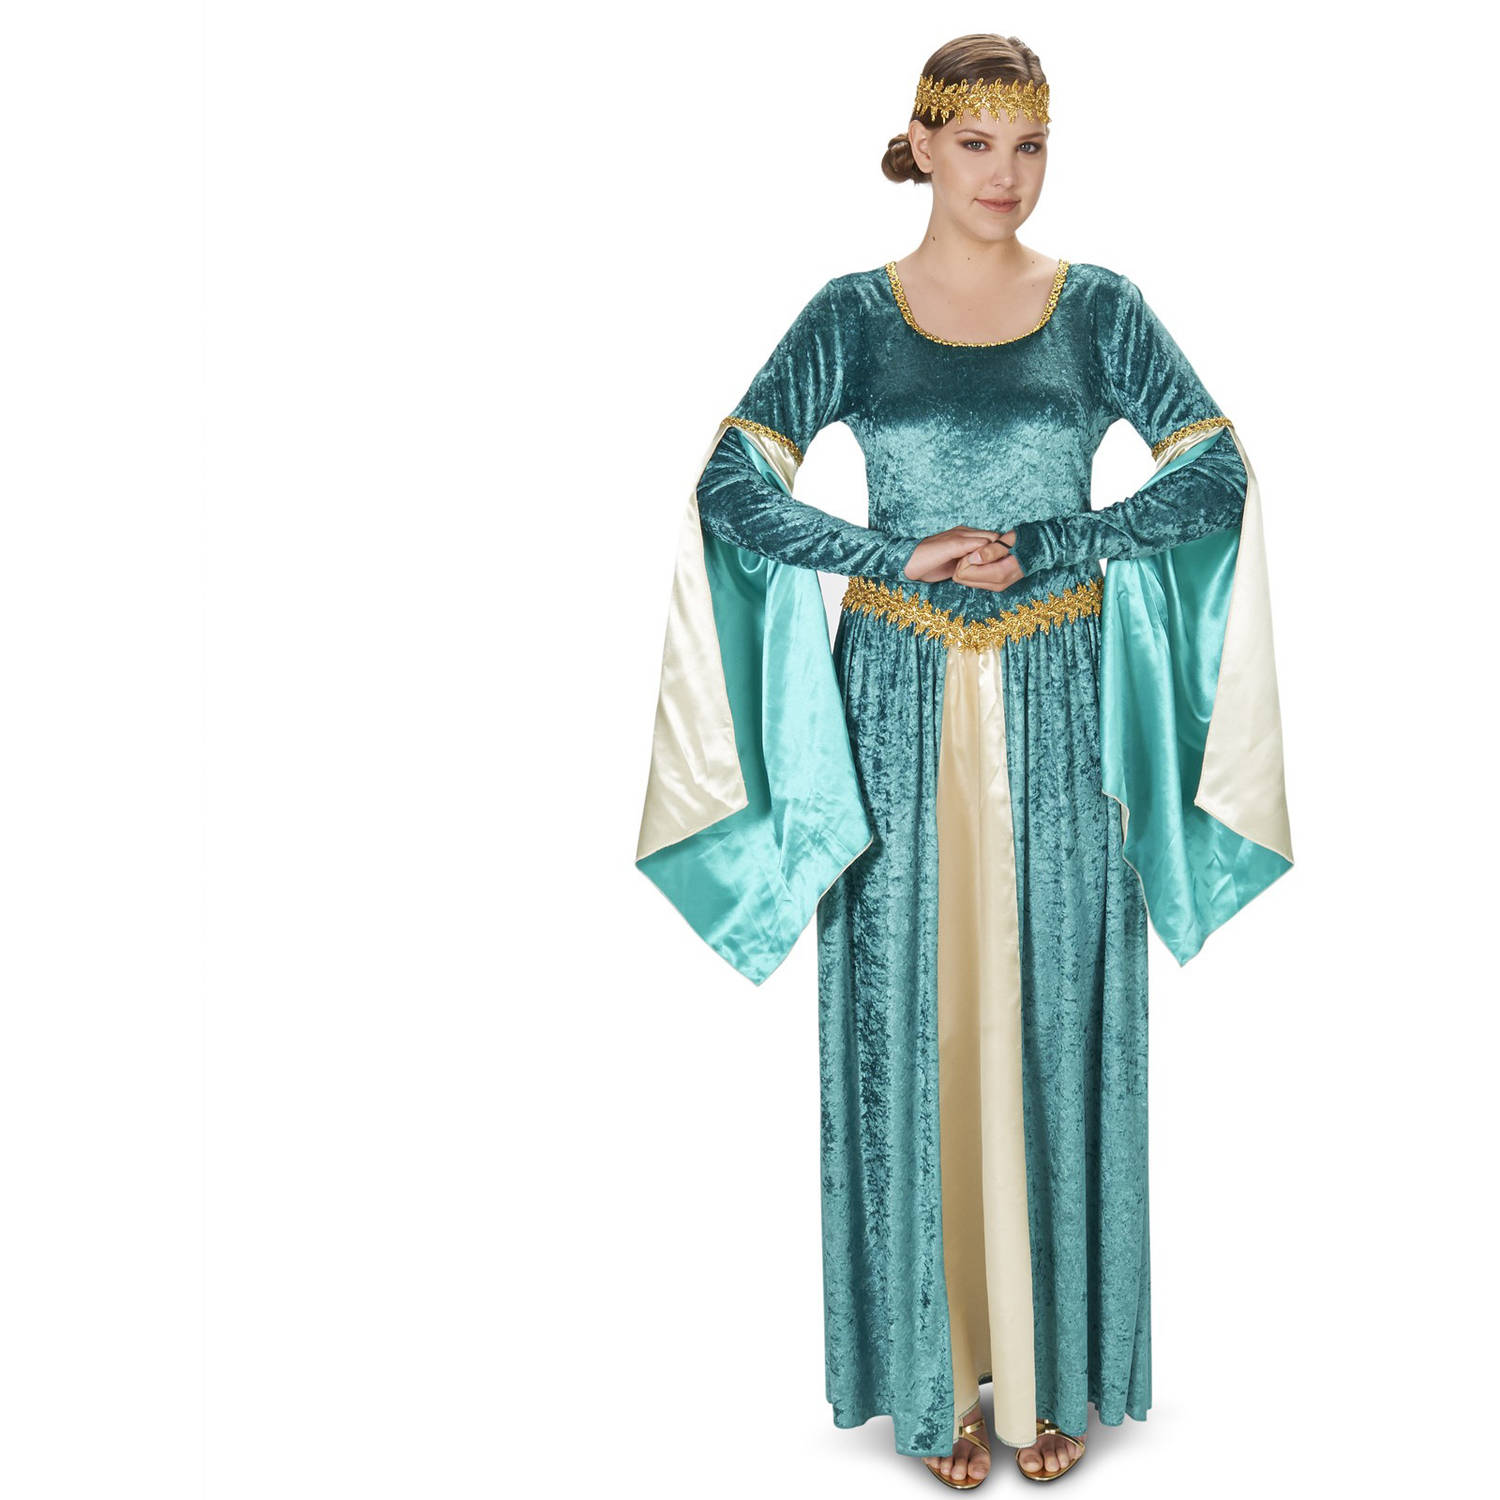 Medieval Teal Velvet Dress Women's Adult Halloween Costume